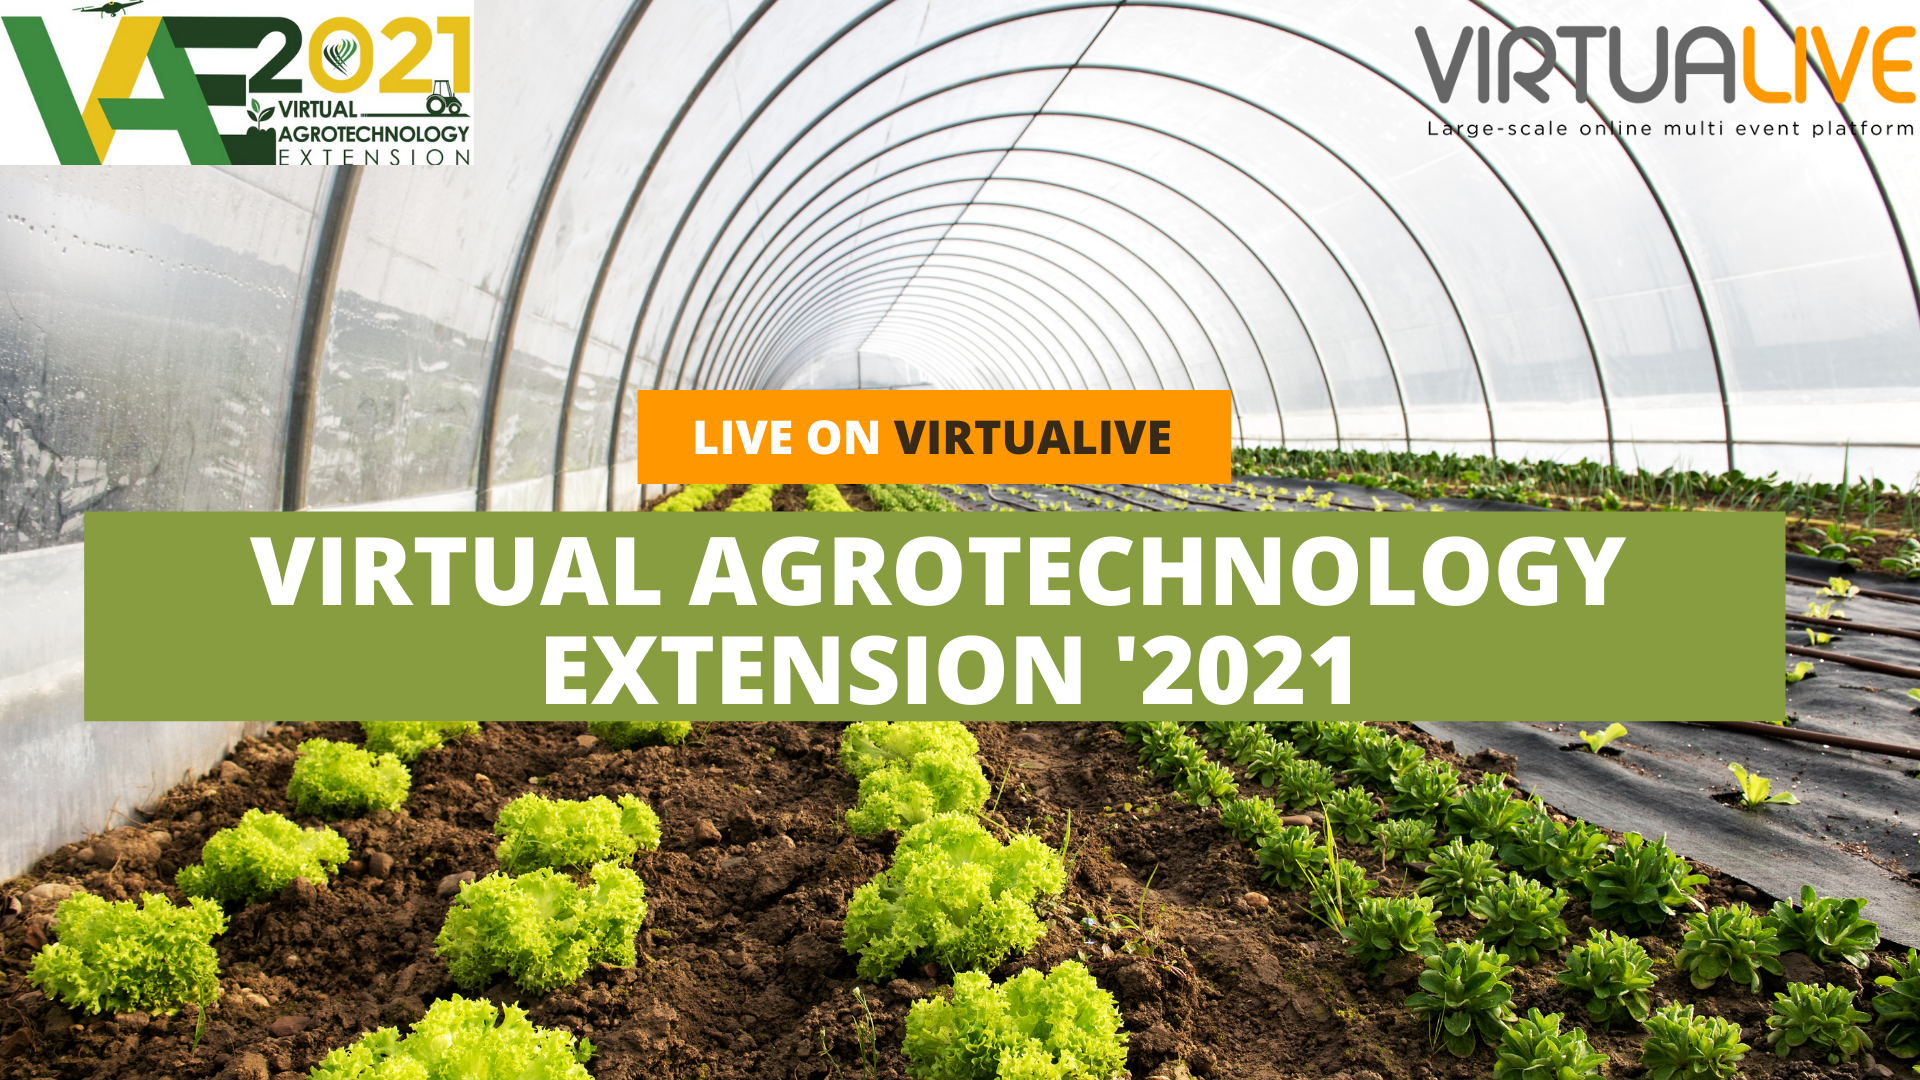 Virtual Agrotechnology extension 2021